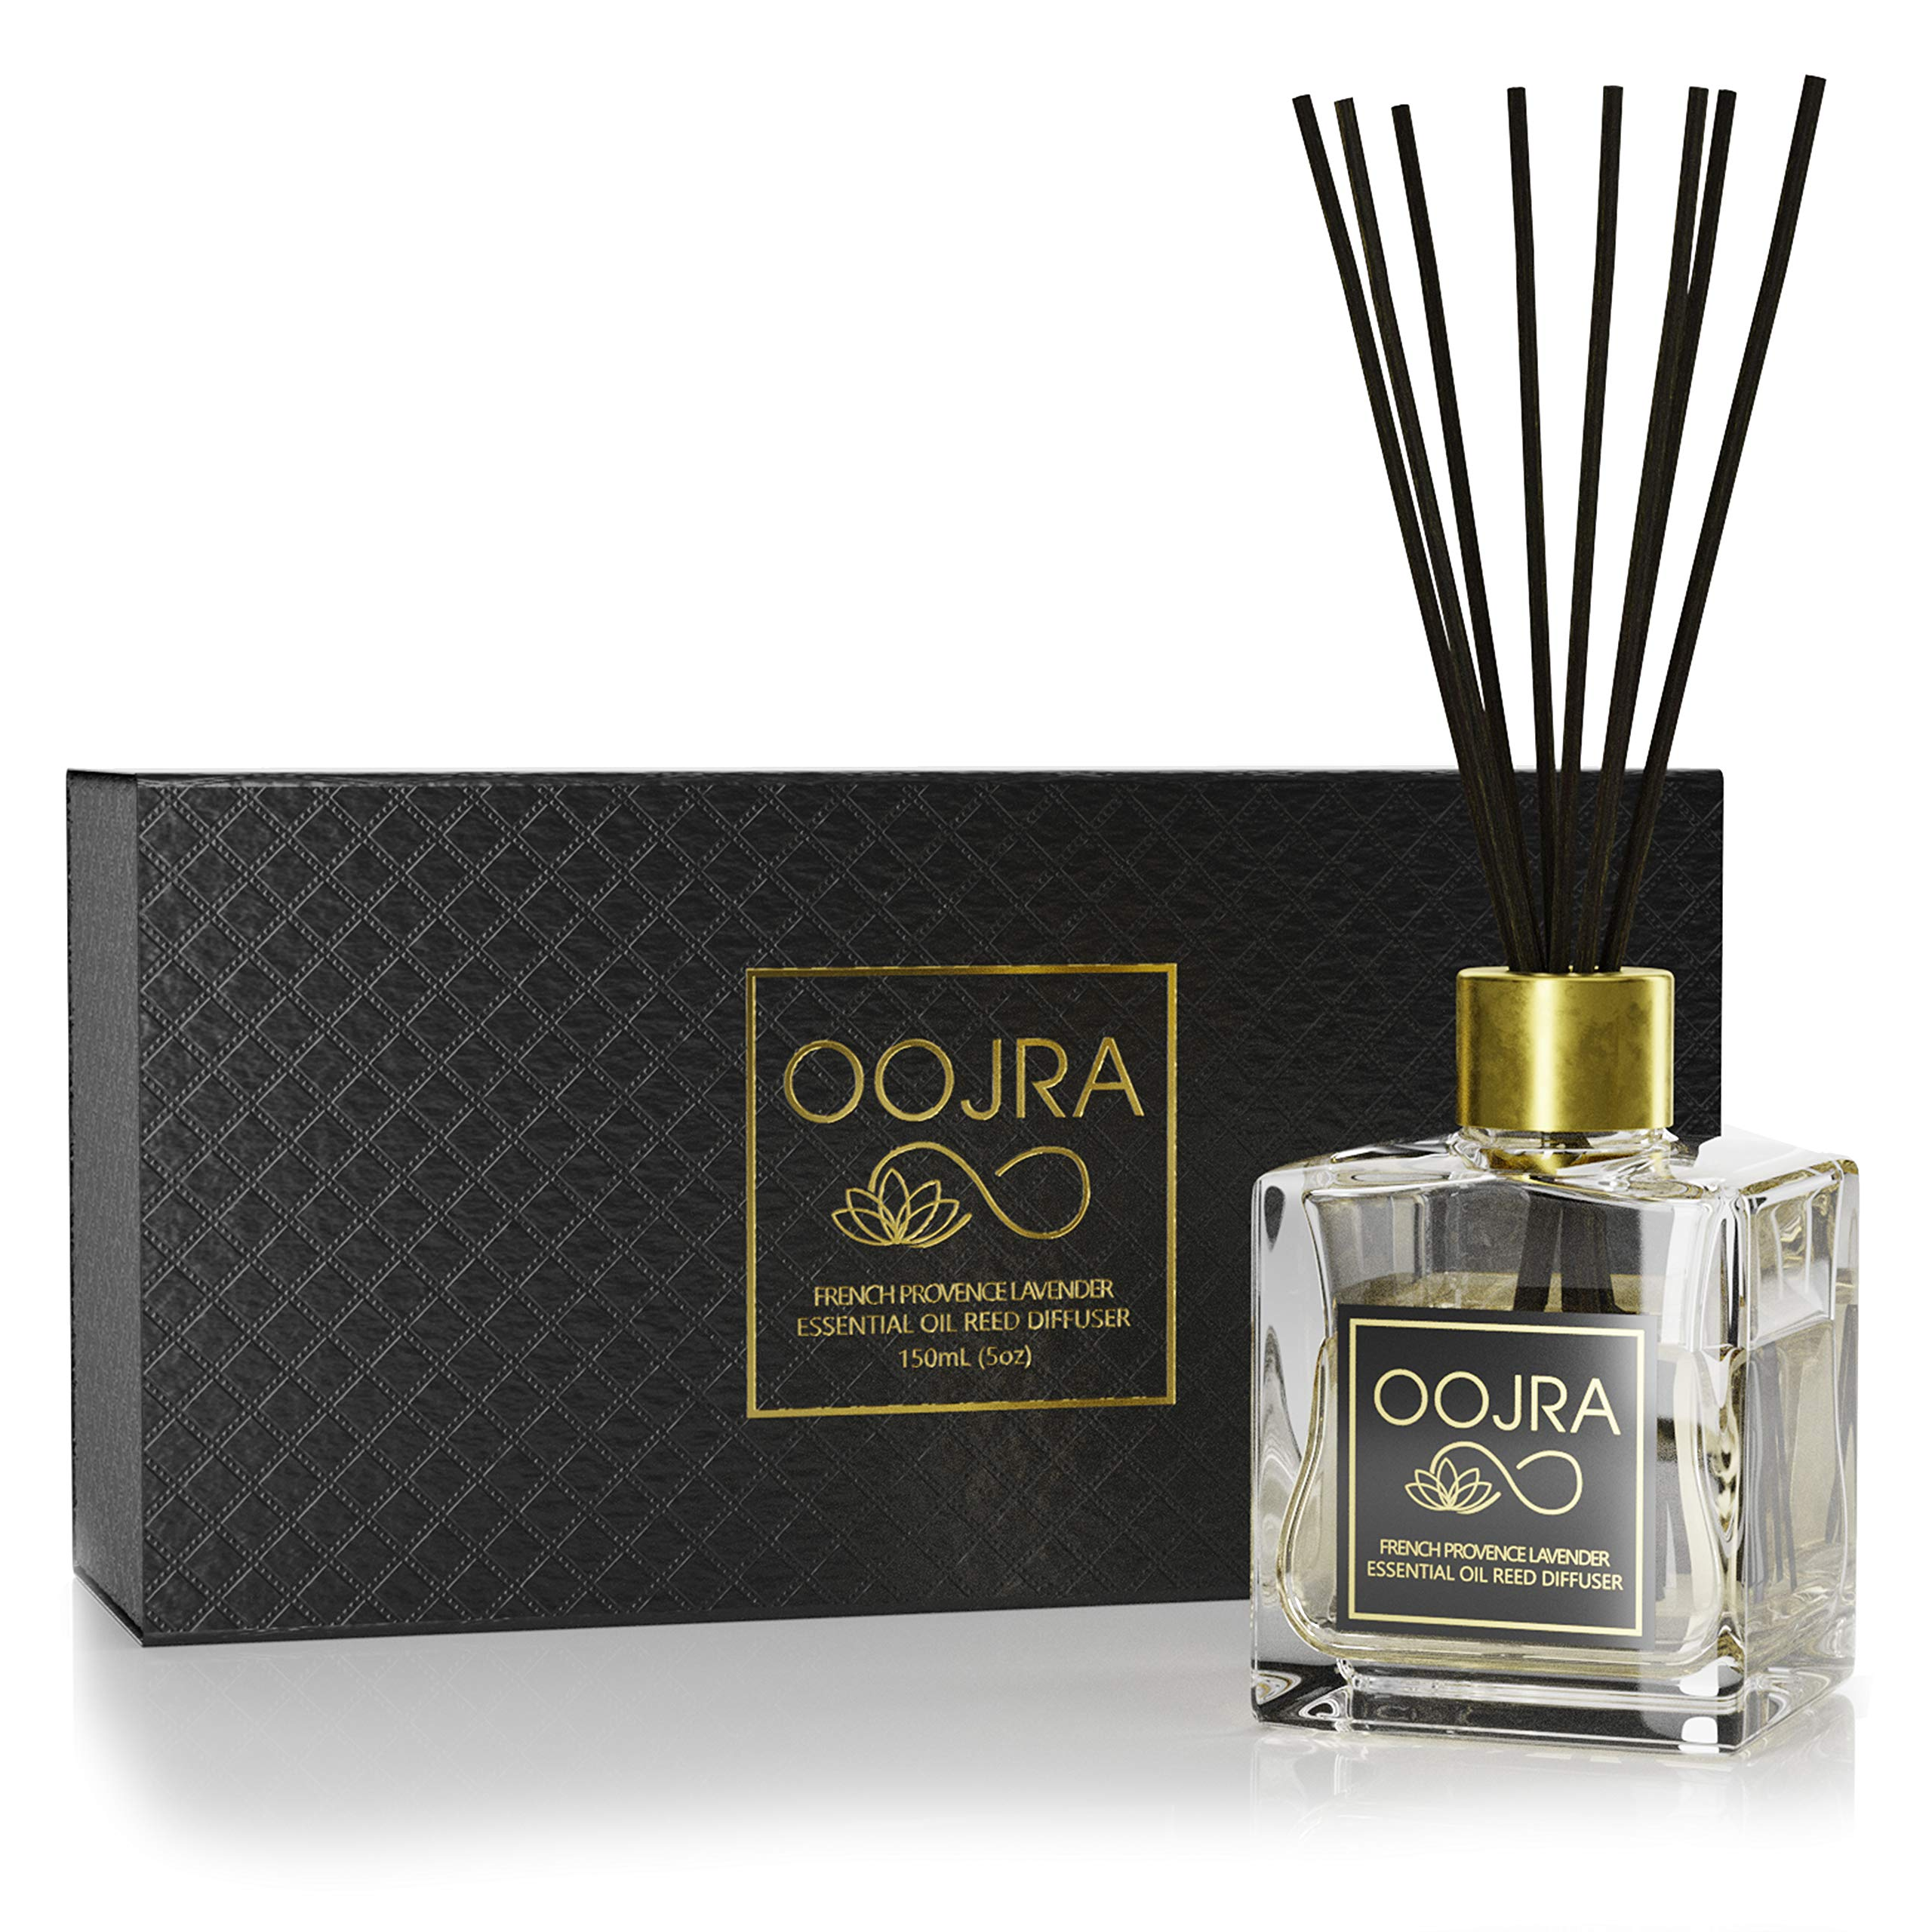 OOJRA Reed Diffuser Gift Set, Natural Essential Oil Long Lasting Fragrance 5 oz; Aromatherapy Air Freshener; French Provence Lavender (+Other Scent Options Available) w/Glass Bottle & Rattan Reeds by OOJRA